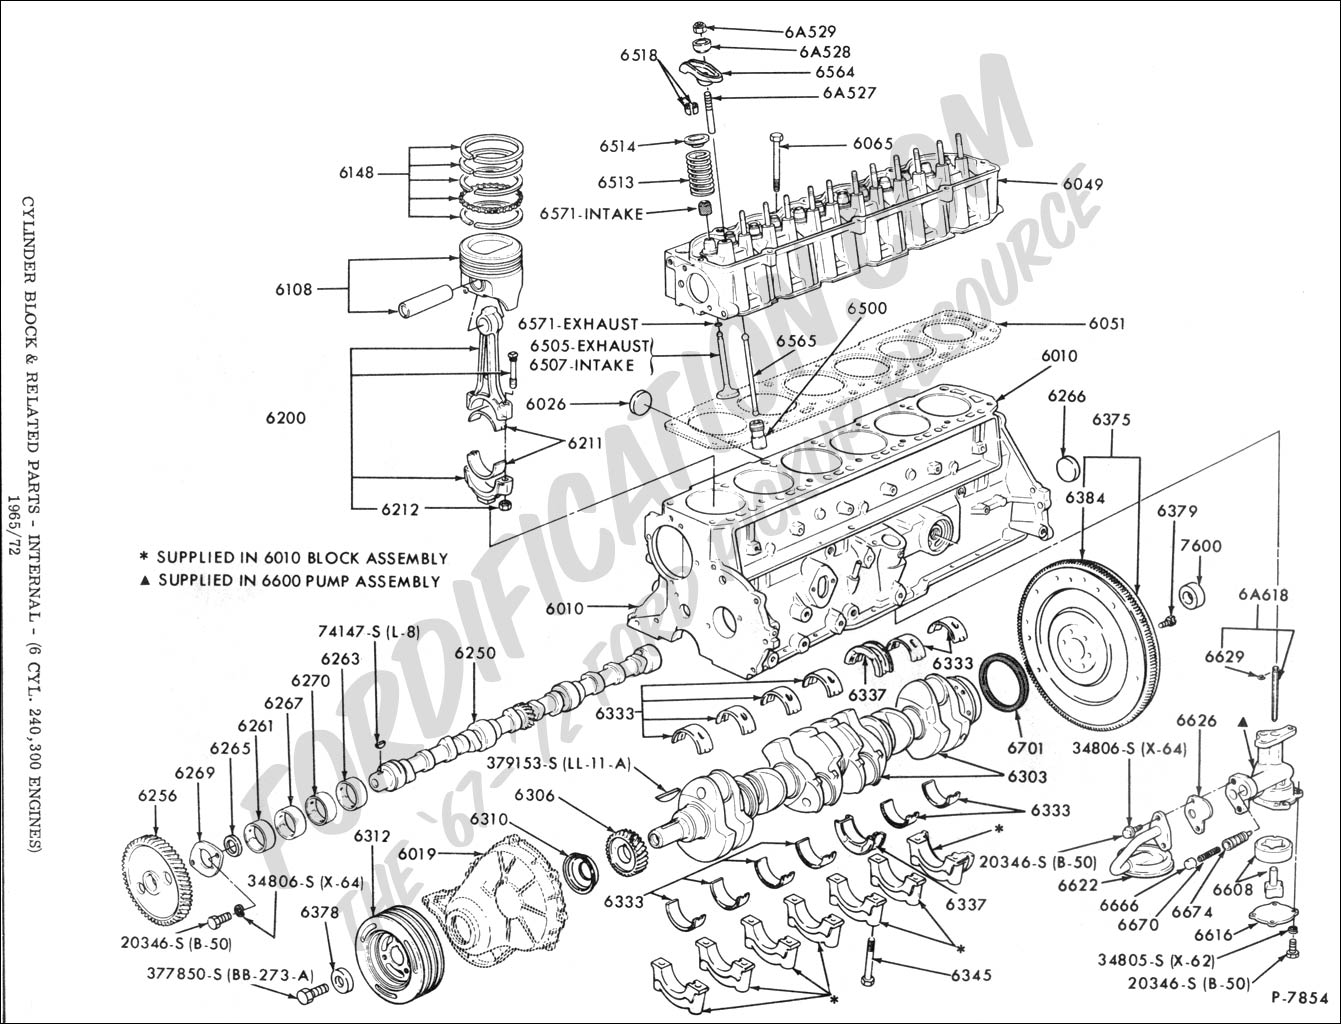 inline engine diagram another wiring diagrams u2022 rh benpaterson co uk  2000 honda accord 4 cylinder engine diagram 4 cylinder engine firing order  diagram